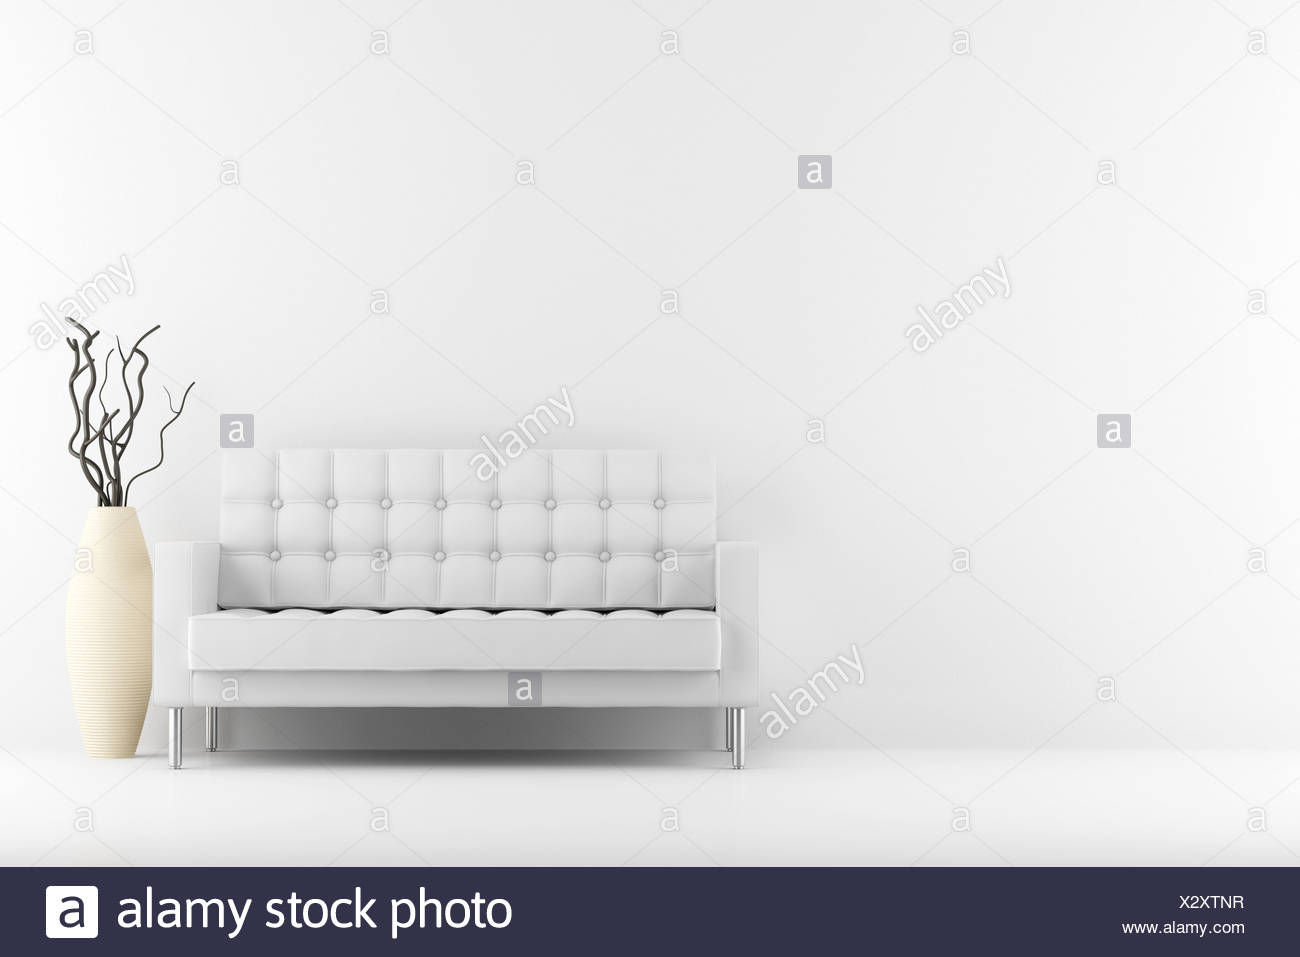 Incredible Leather Couch And Vase With Dry Wood Stock Photo 277185379 Pabps2019 Chair Design Images Pabps2019Com